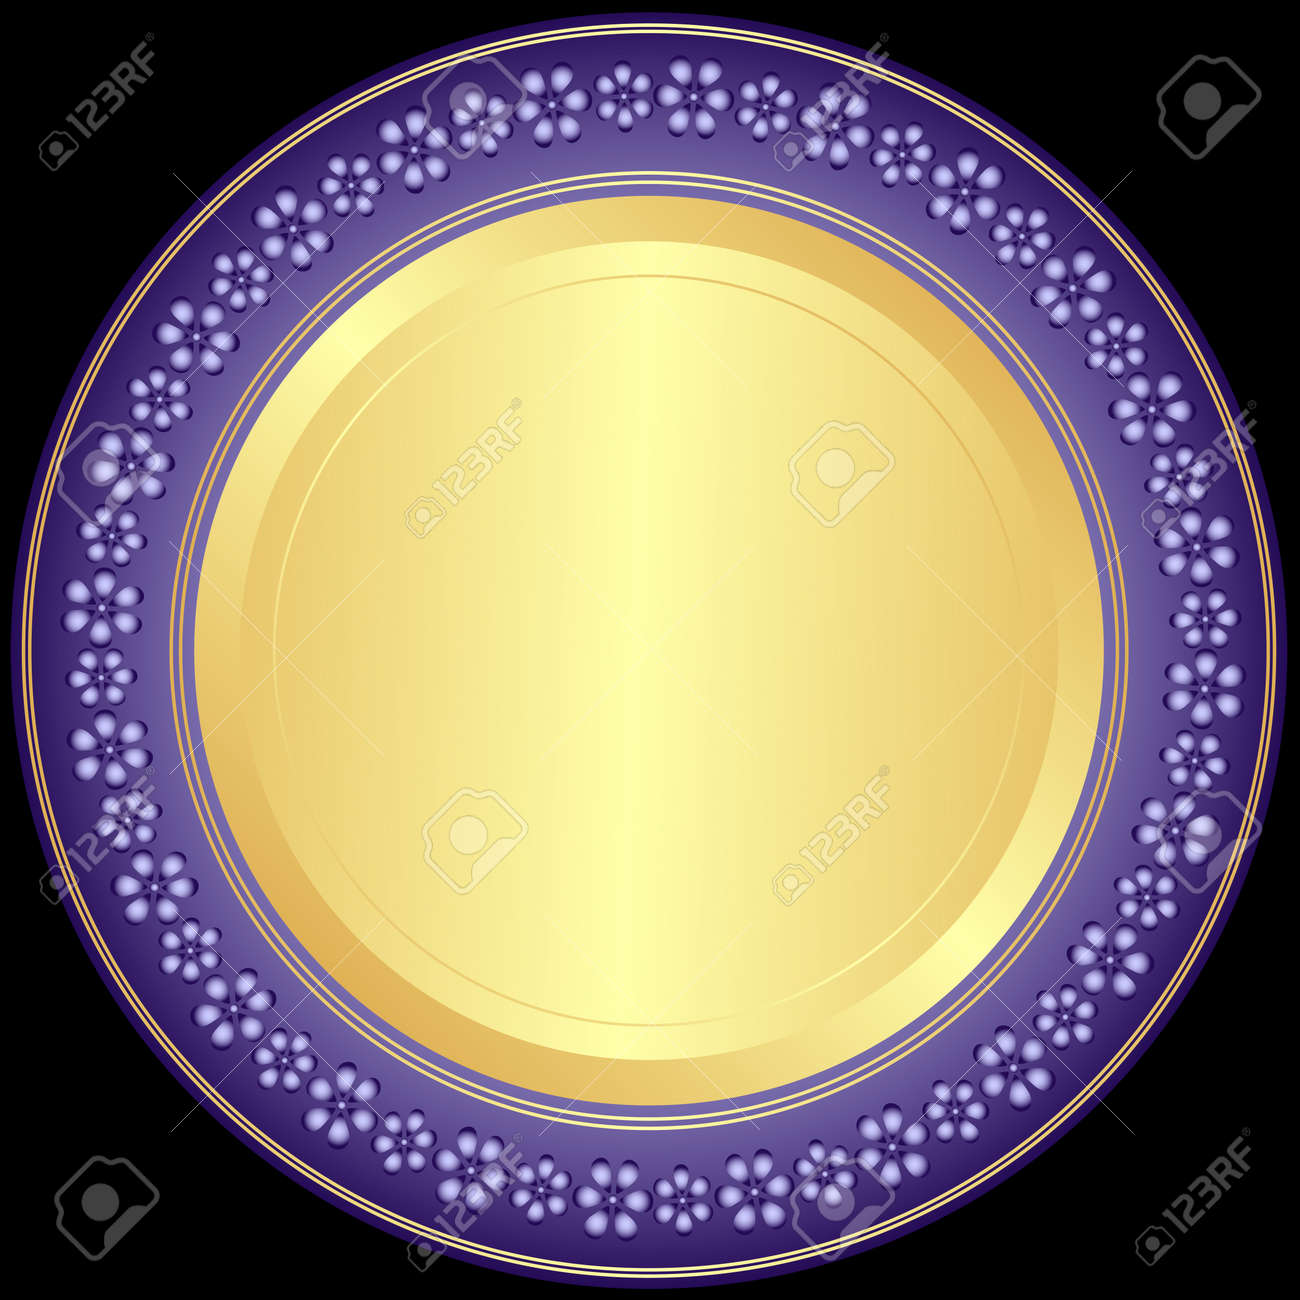 Violet-golden decorative plate with floral ornament on black Stock Vector - 9262422